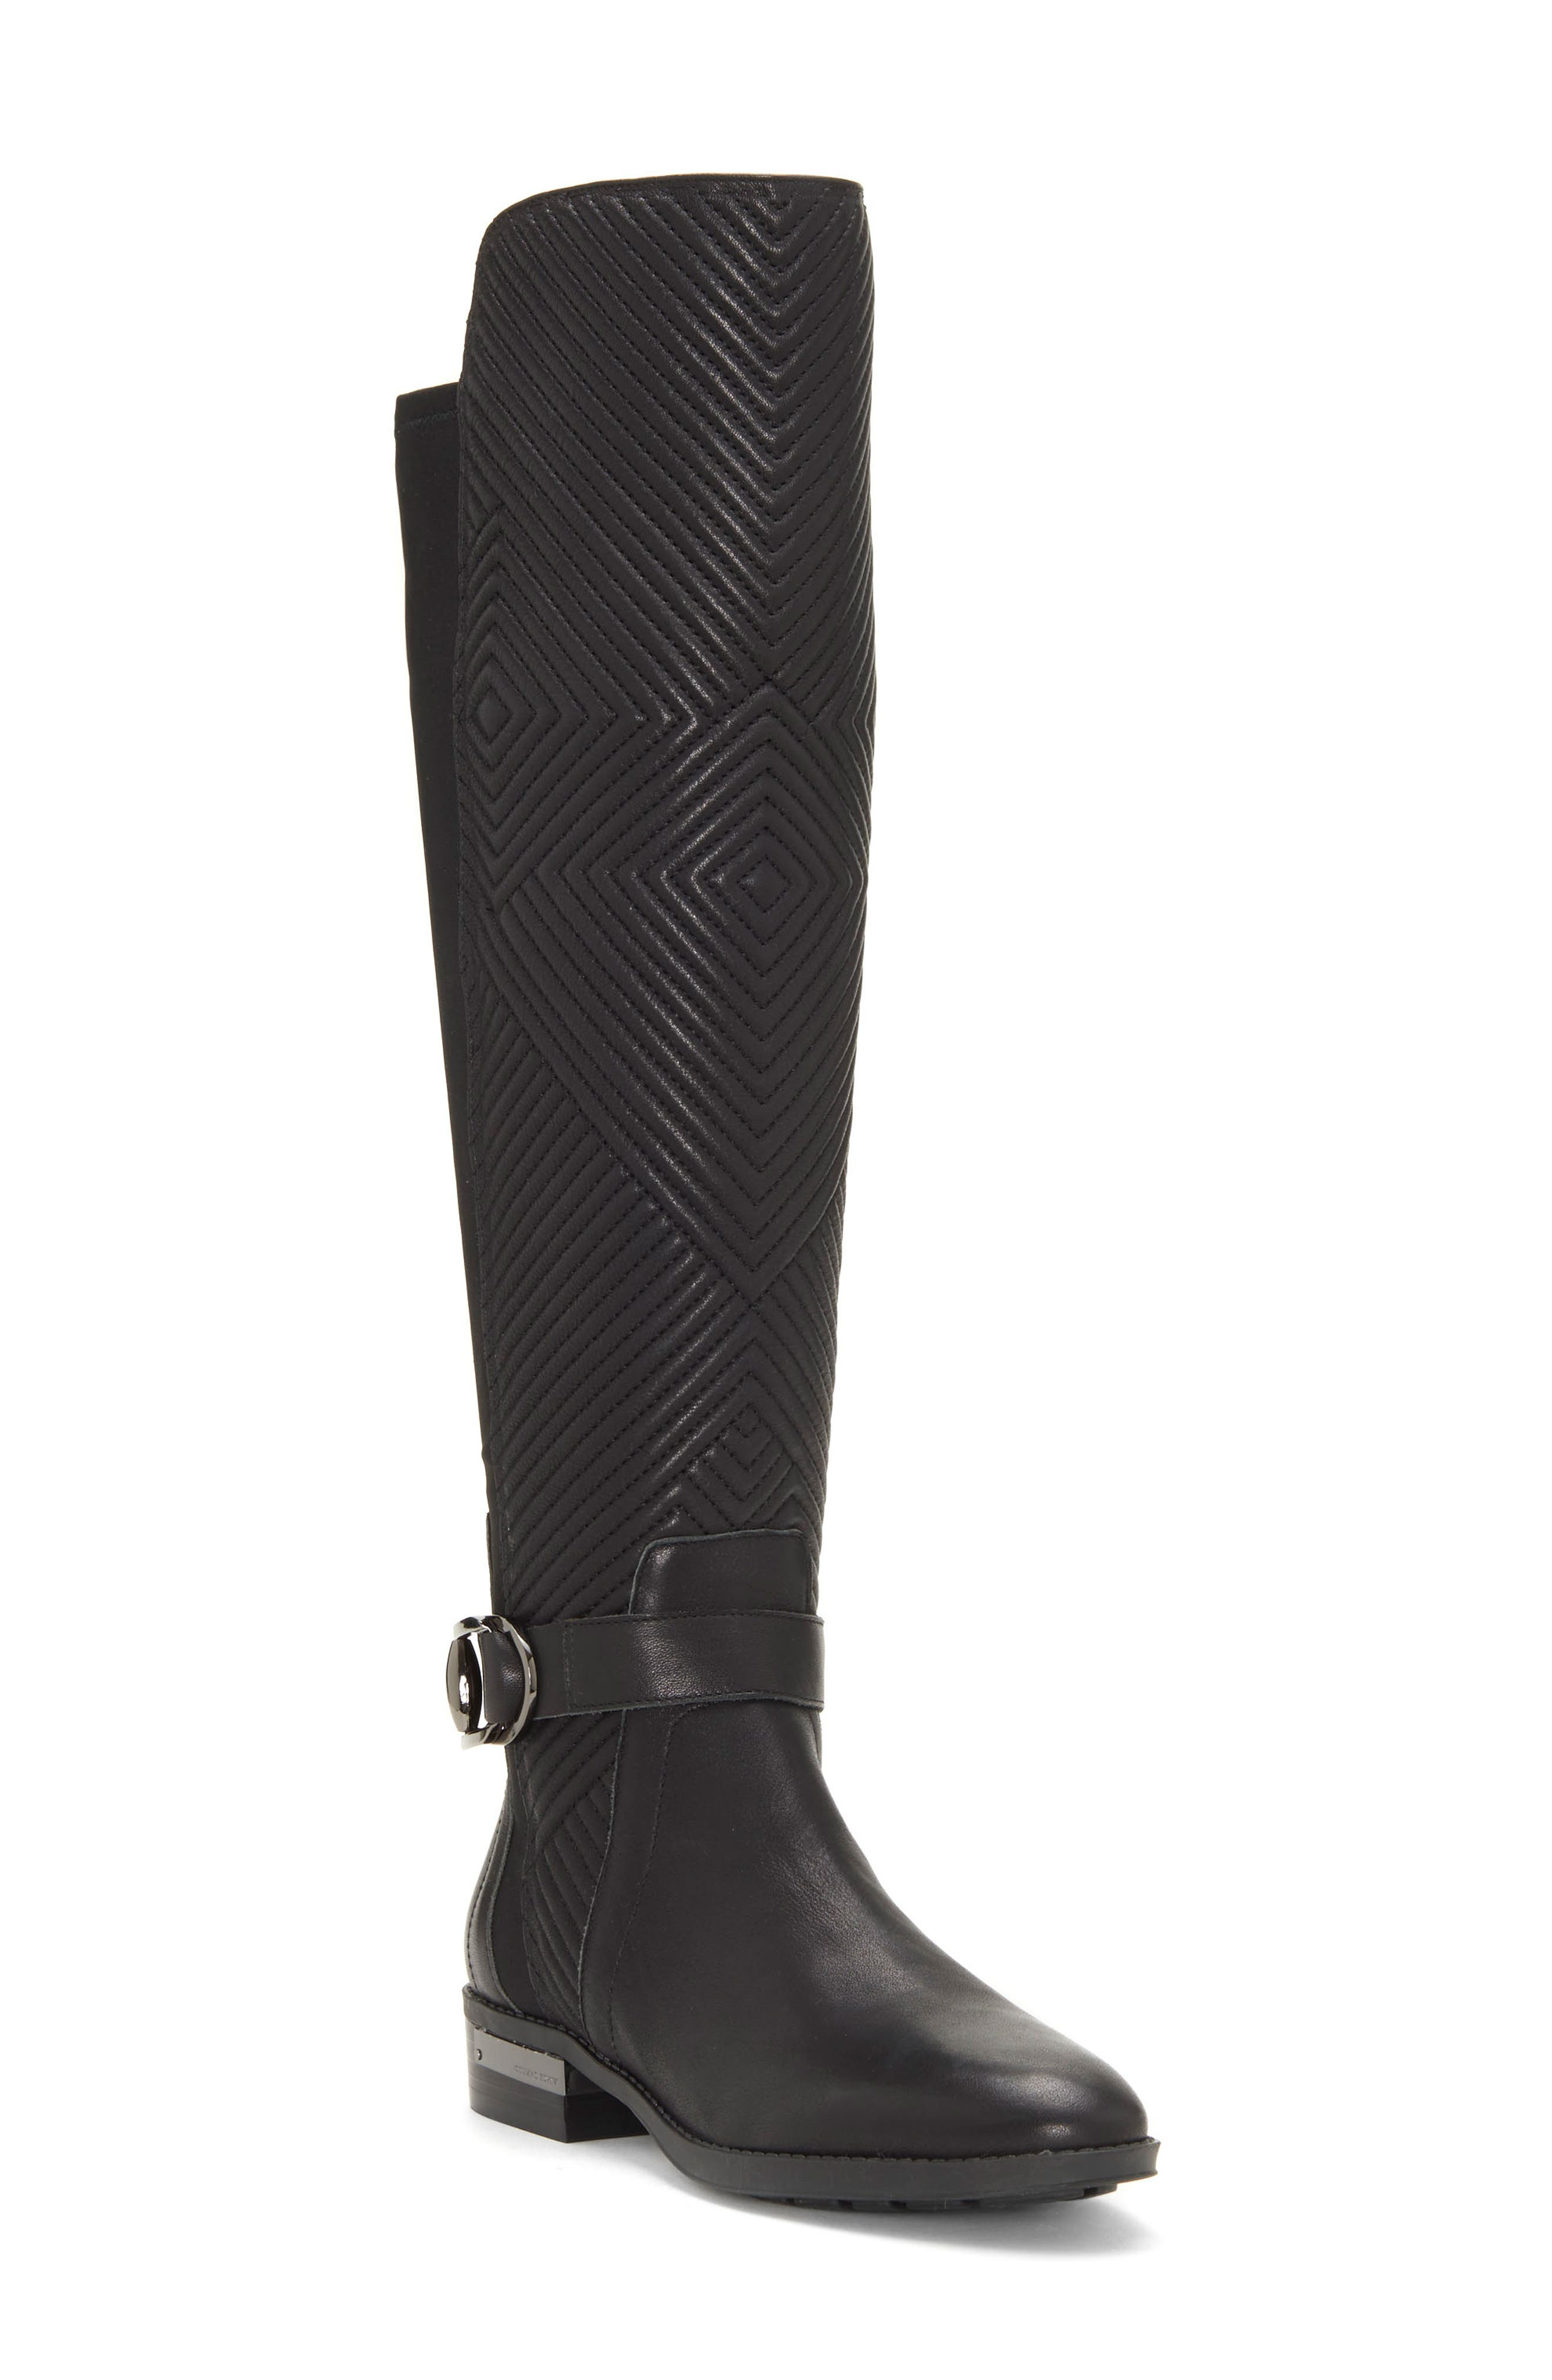 Pordalia Over-the-Knee Boot,                             Main thumbnail 1, color,                             BLACK LEATHER